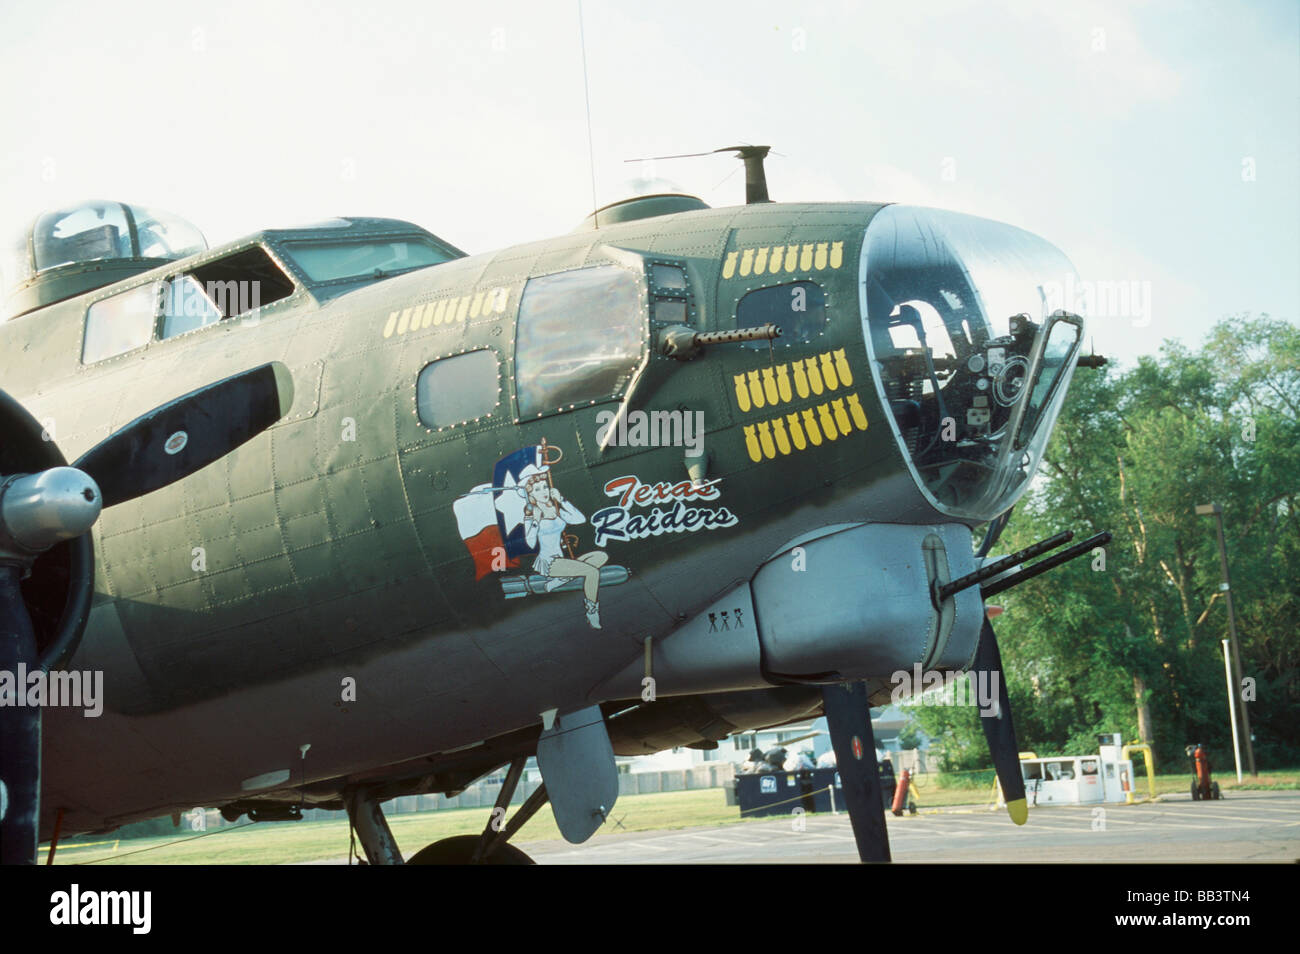 B-17 G Flying Fortress, close up of the nose and cockpit of this plane Stock Photo